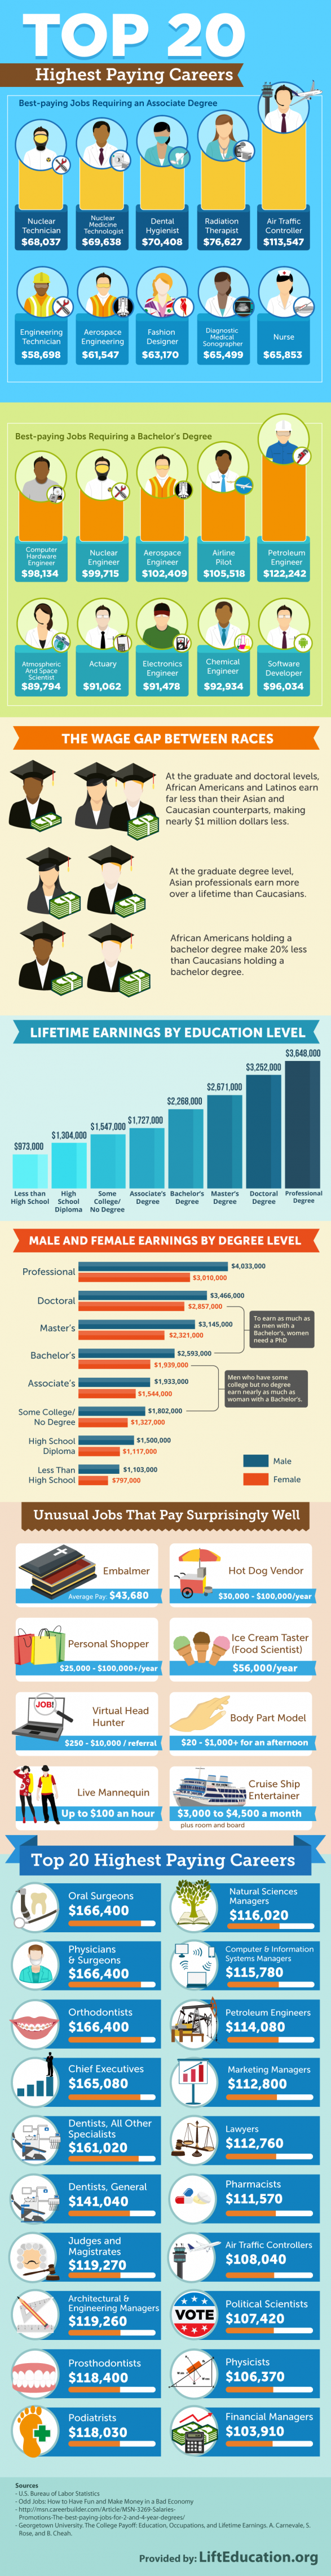 Top 20 highest paying careers